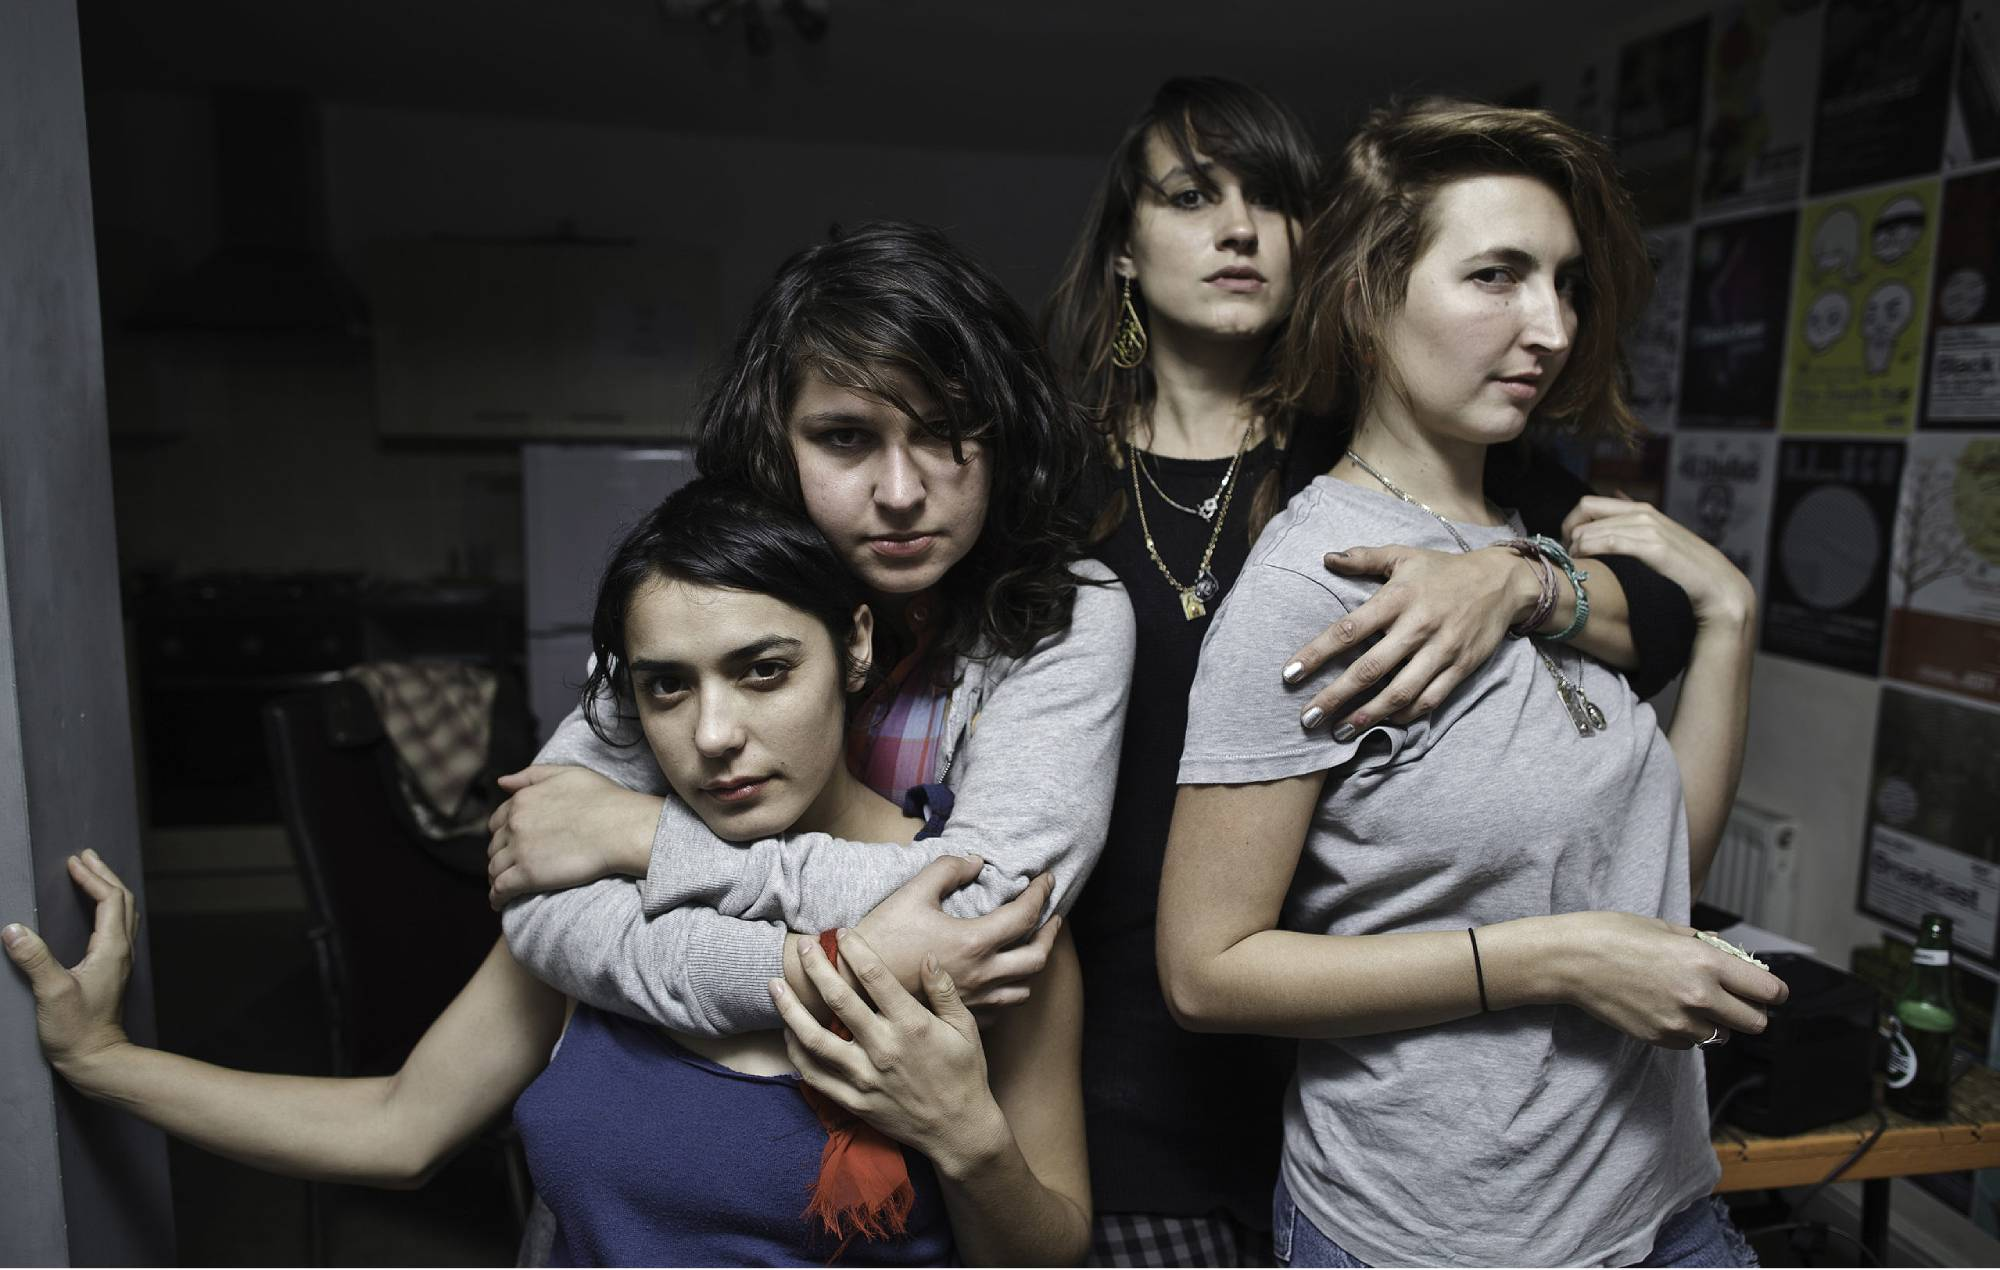 Warpaint. Credit: Danny North for NME